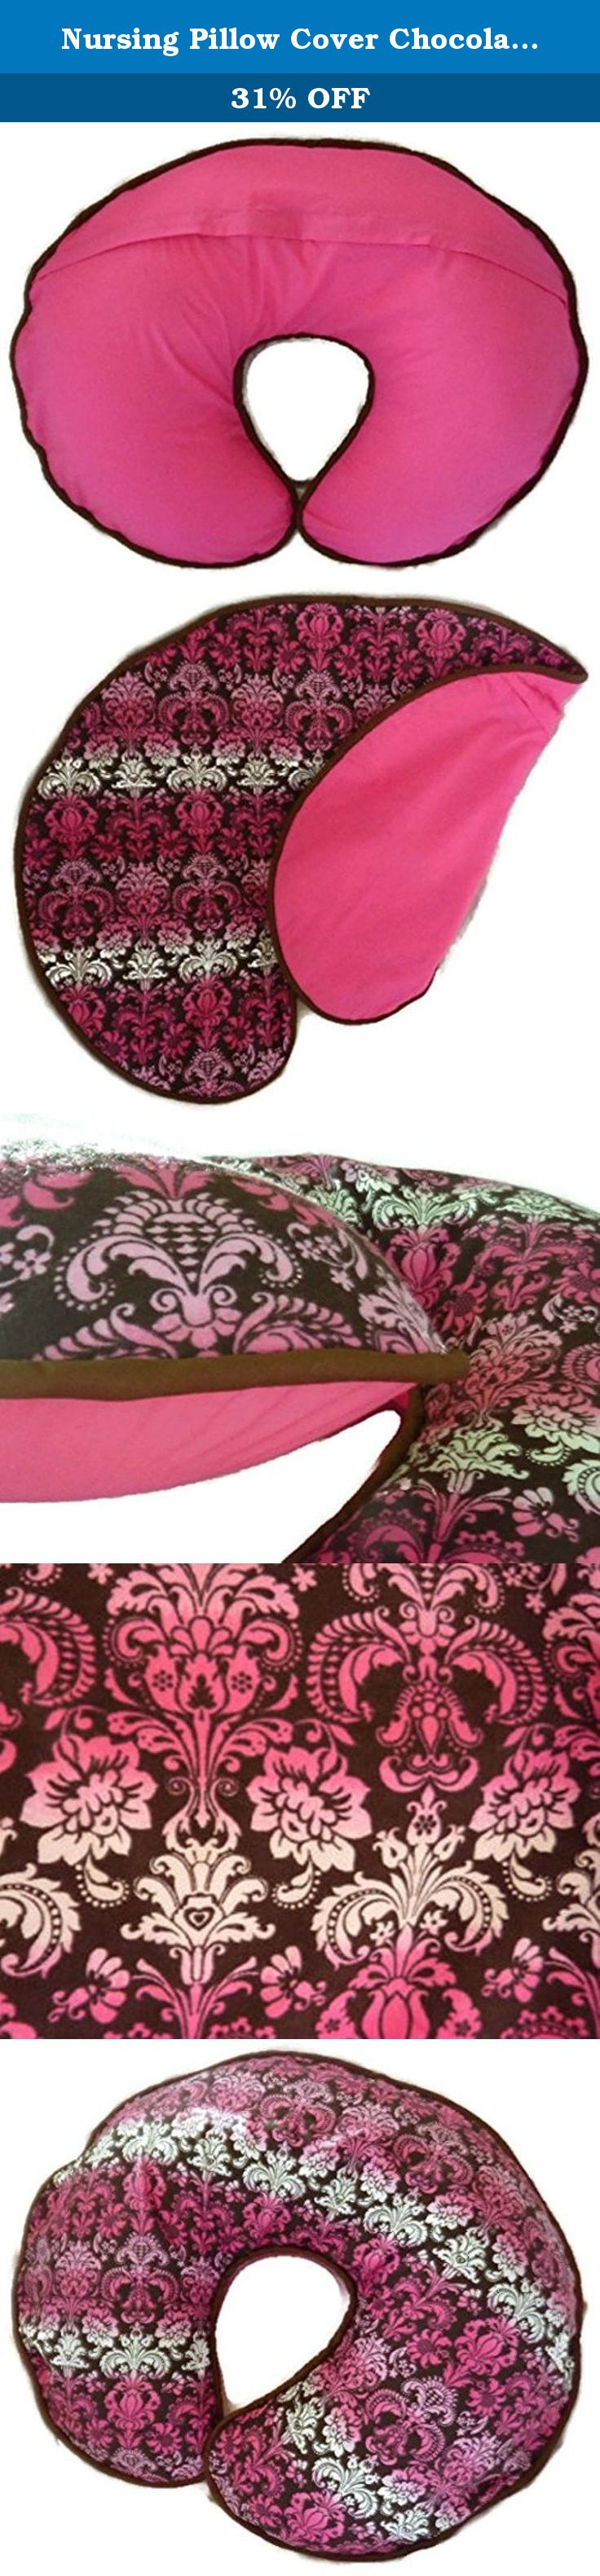 Nursing Pillow Cover Chocolate Brown with Pink and White Damask. This nursing pillow cover is handmade using chocolate brown cotton fabric featuring damask pattern in various shades of pink and white on the top side with a chocolate brown piping along the edge. The back of the cover is made from solid hot pink cotton fabric with a zipper for easy removal. The cover is machine washable in cold wash and air drying is recommended. The nursing pillow cover is shown pictured on a Nursing…